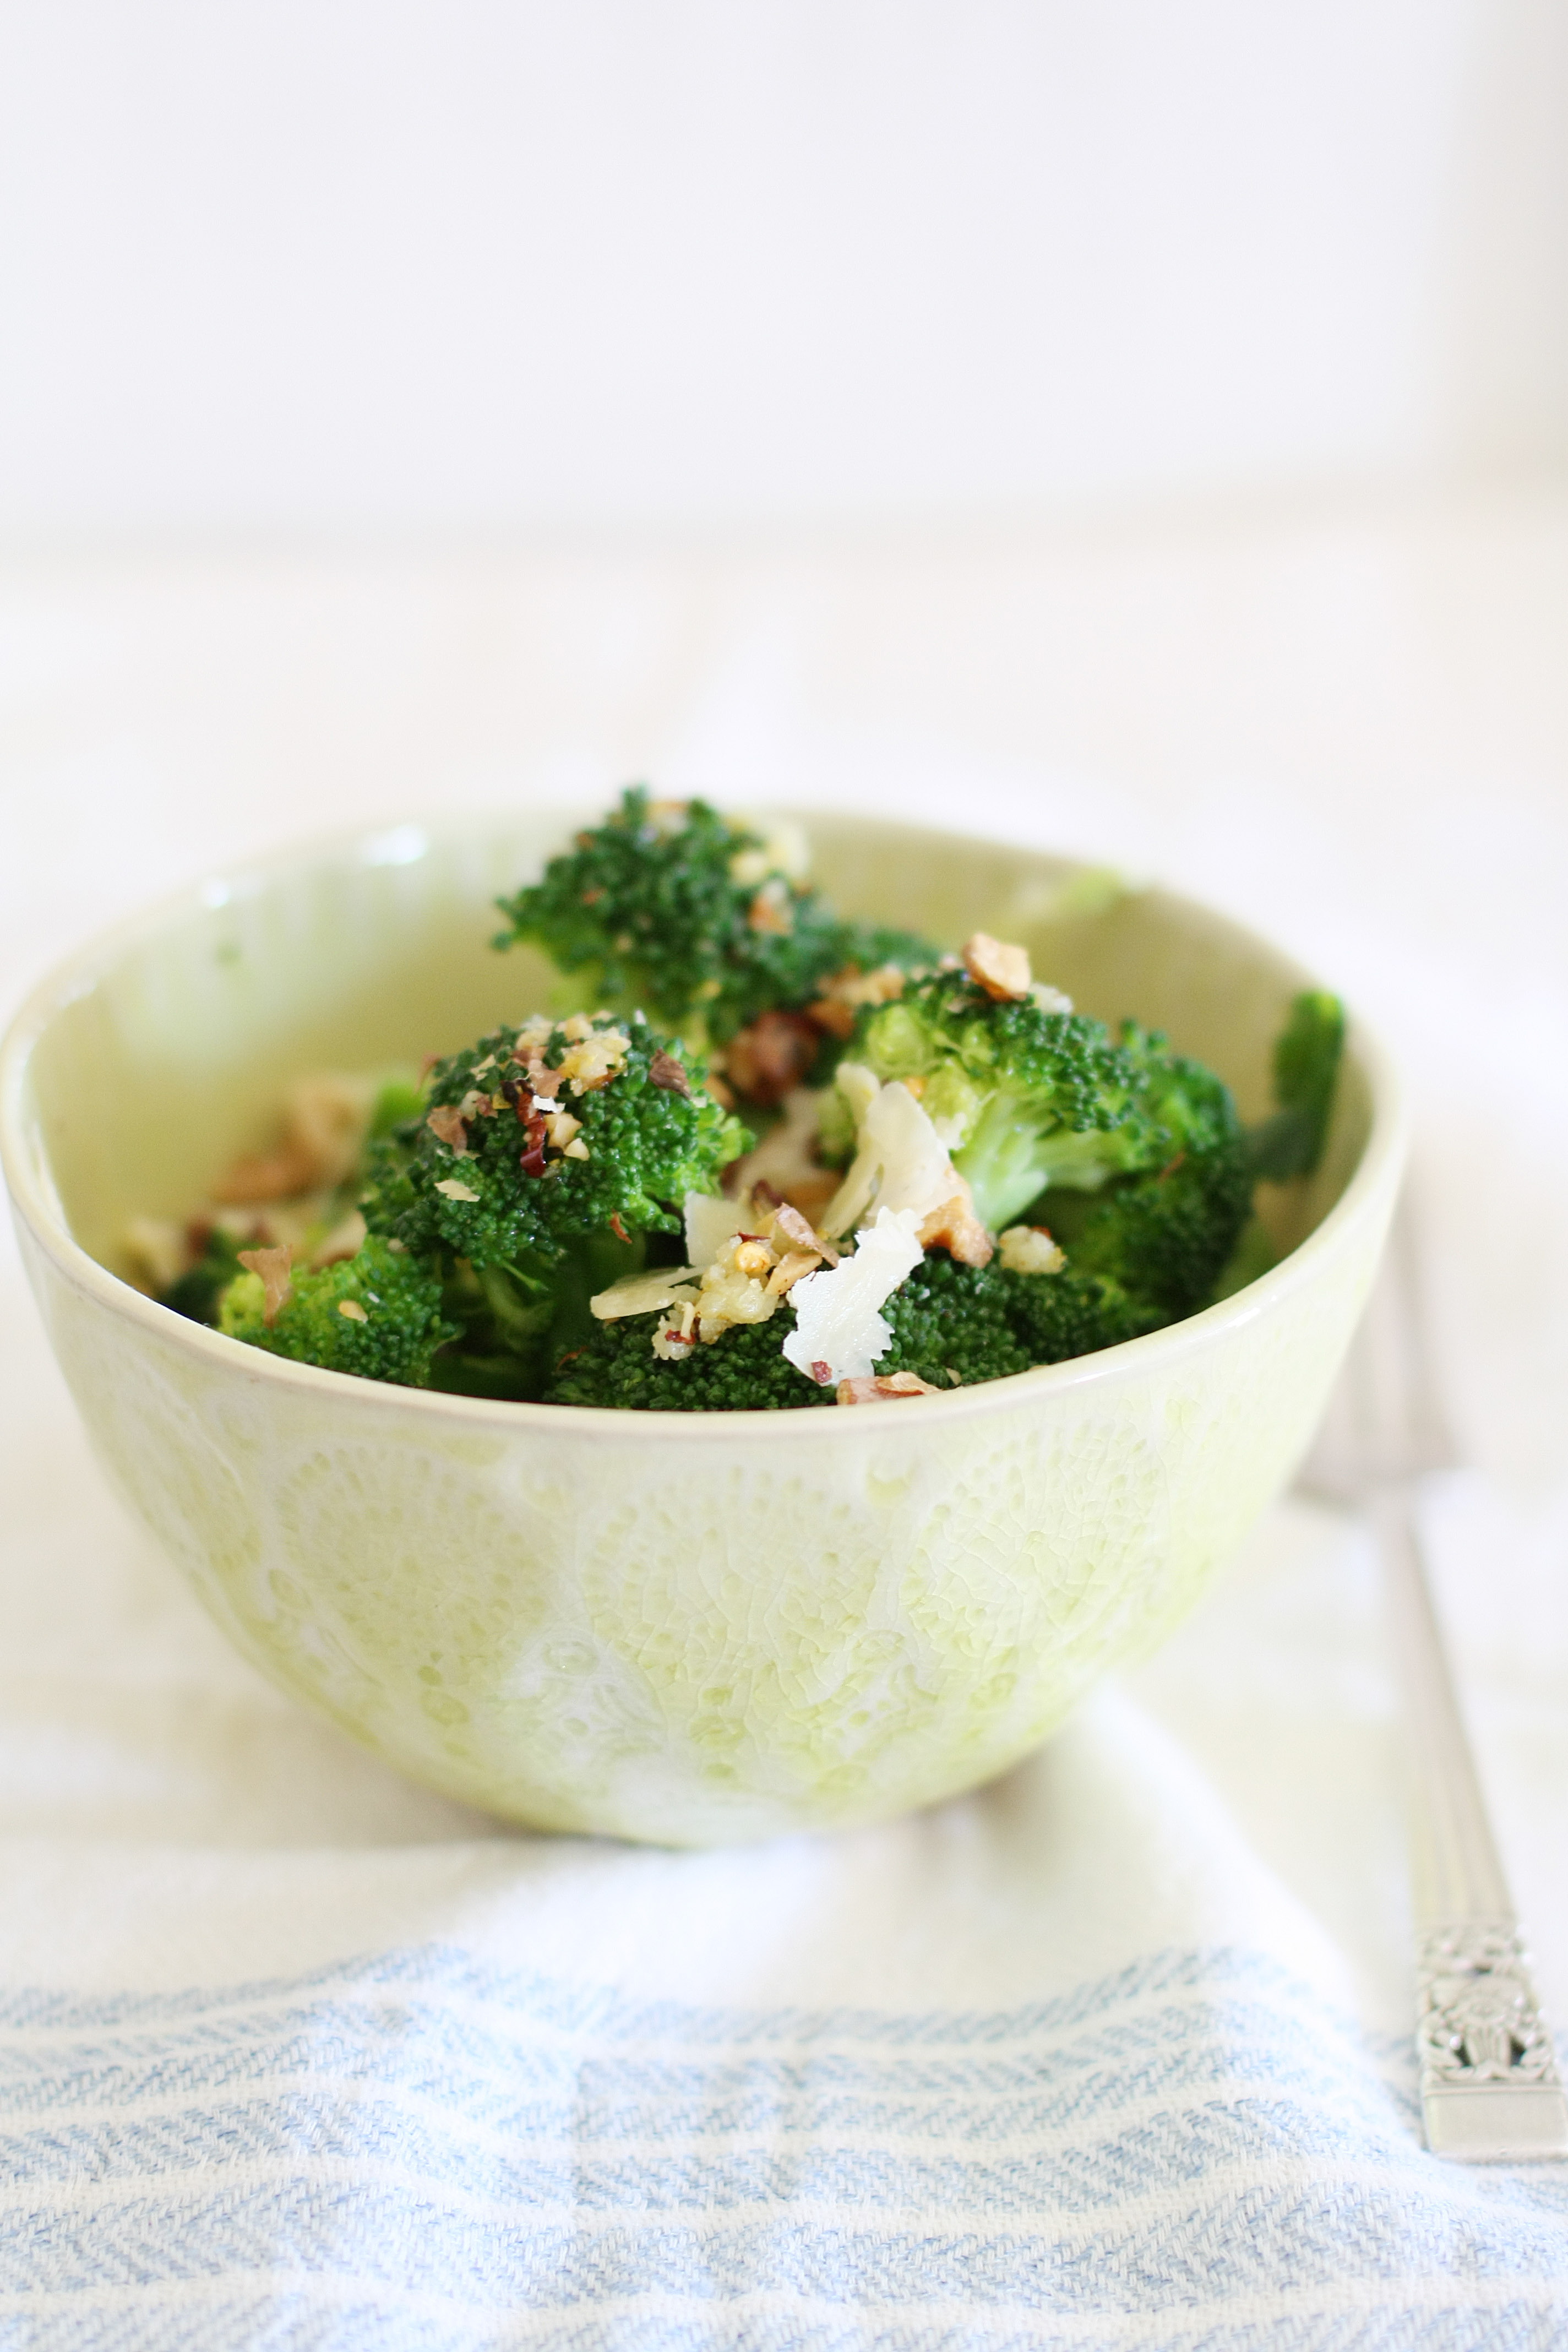 chilli lemon broccoli